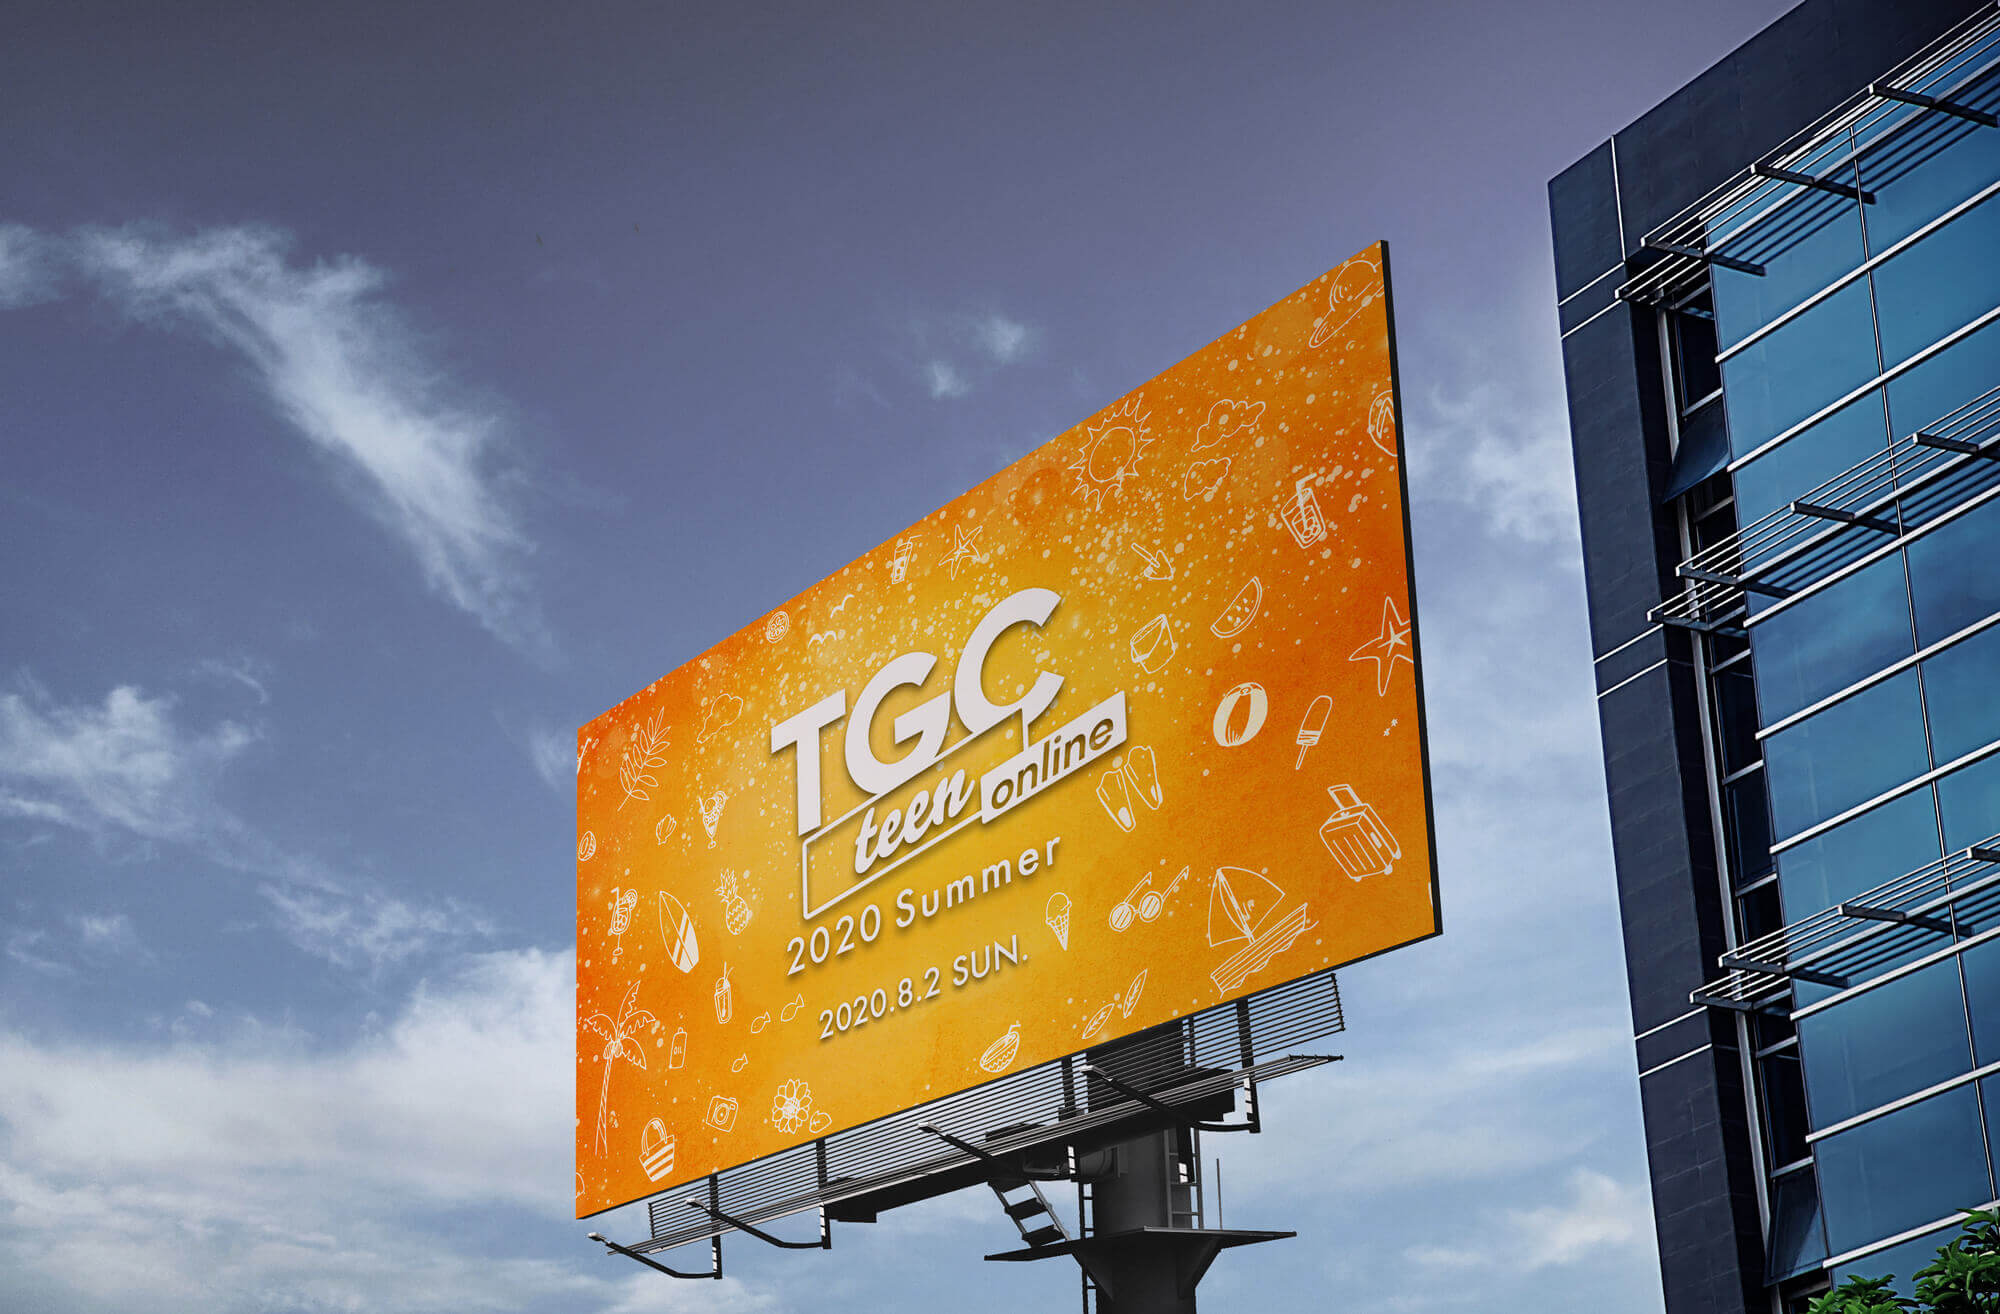 tgc teen 2020 summer